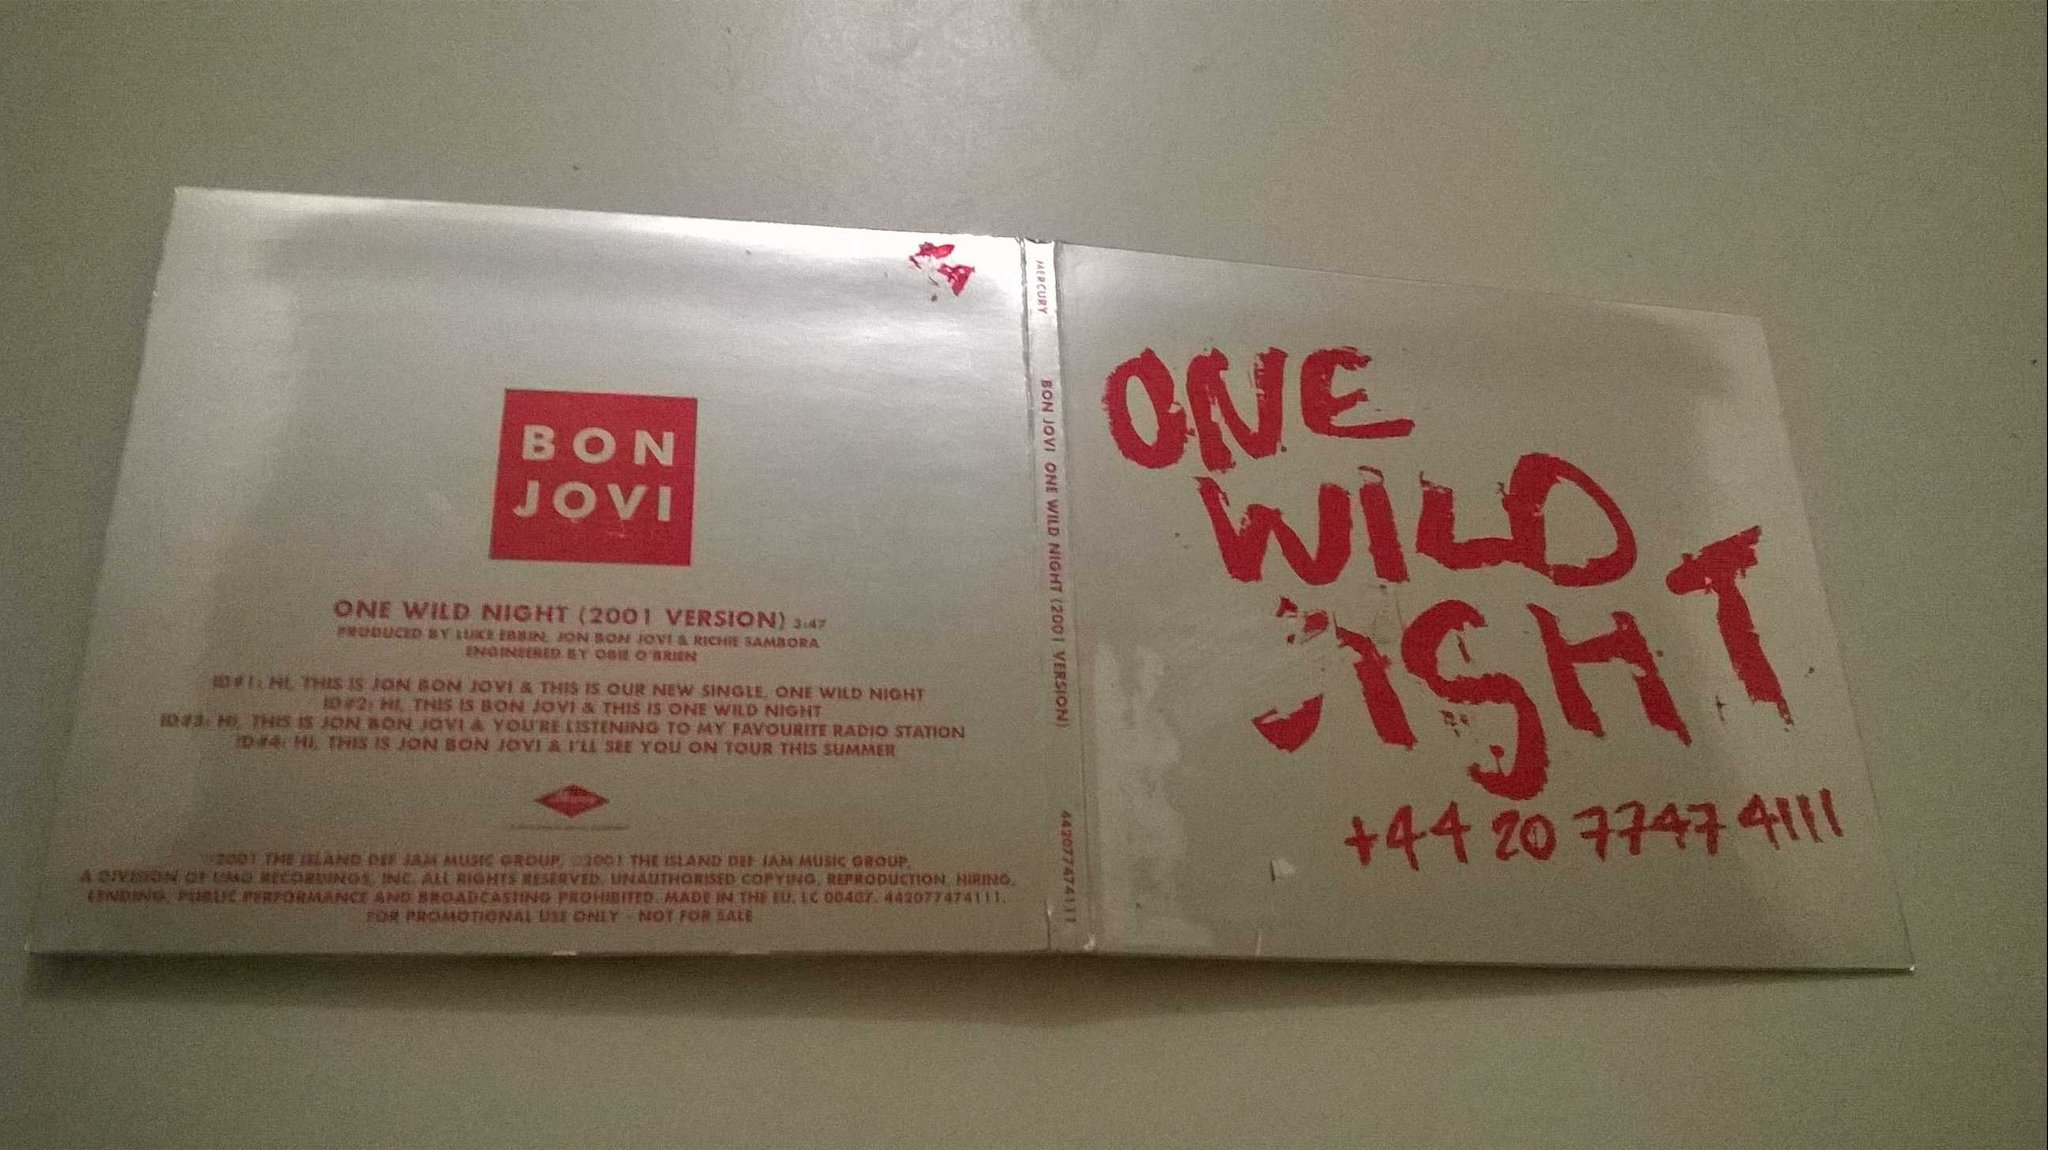 Bon Jovi - One Wild Night ( 2001 version ) CD, promo